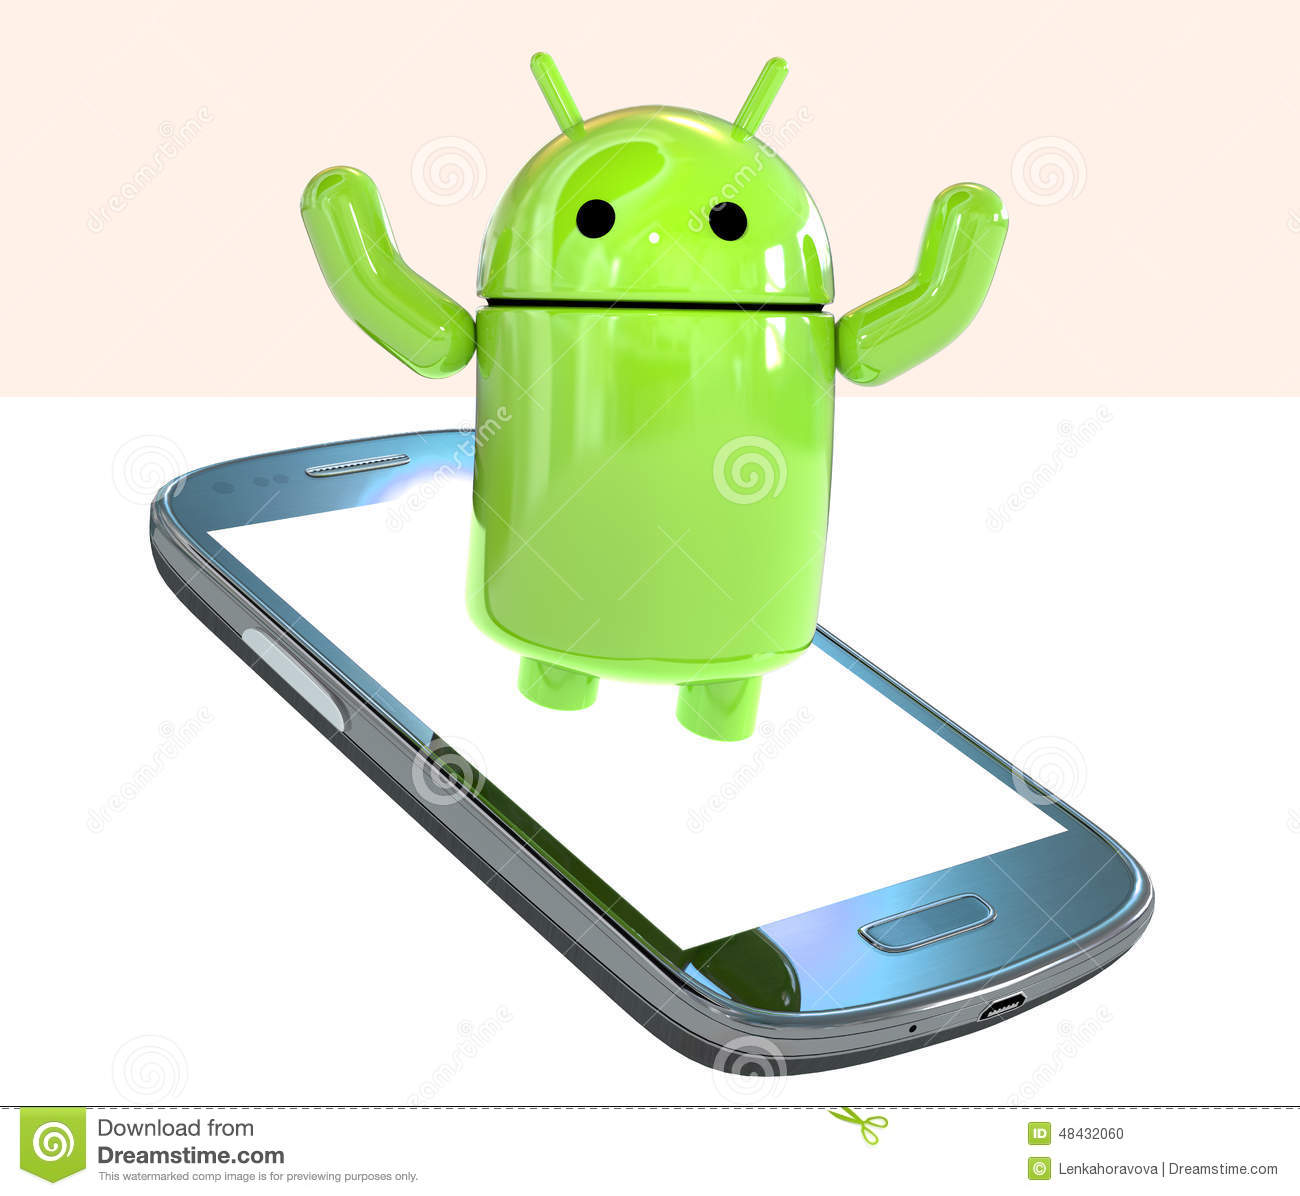 Android 3d clipart download.